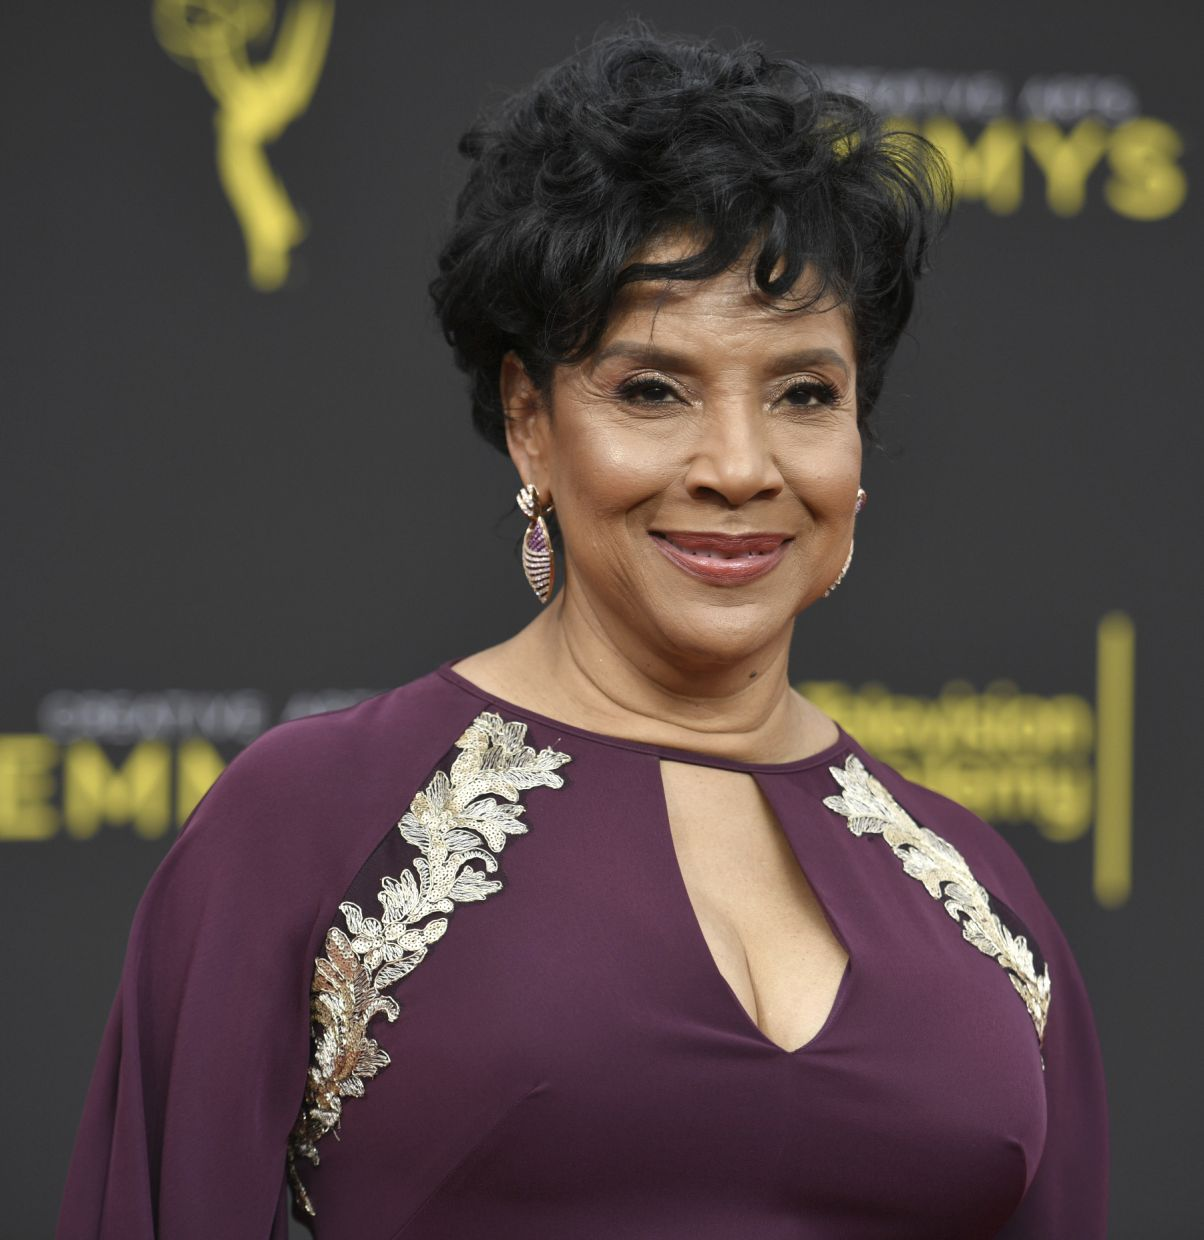 Phylicia Rashad got a nomination for her role in 'This Is Us'. Photo: AP